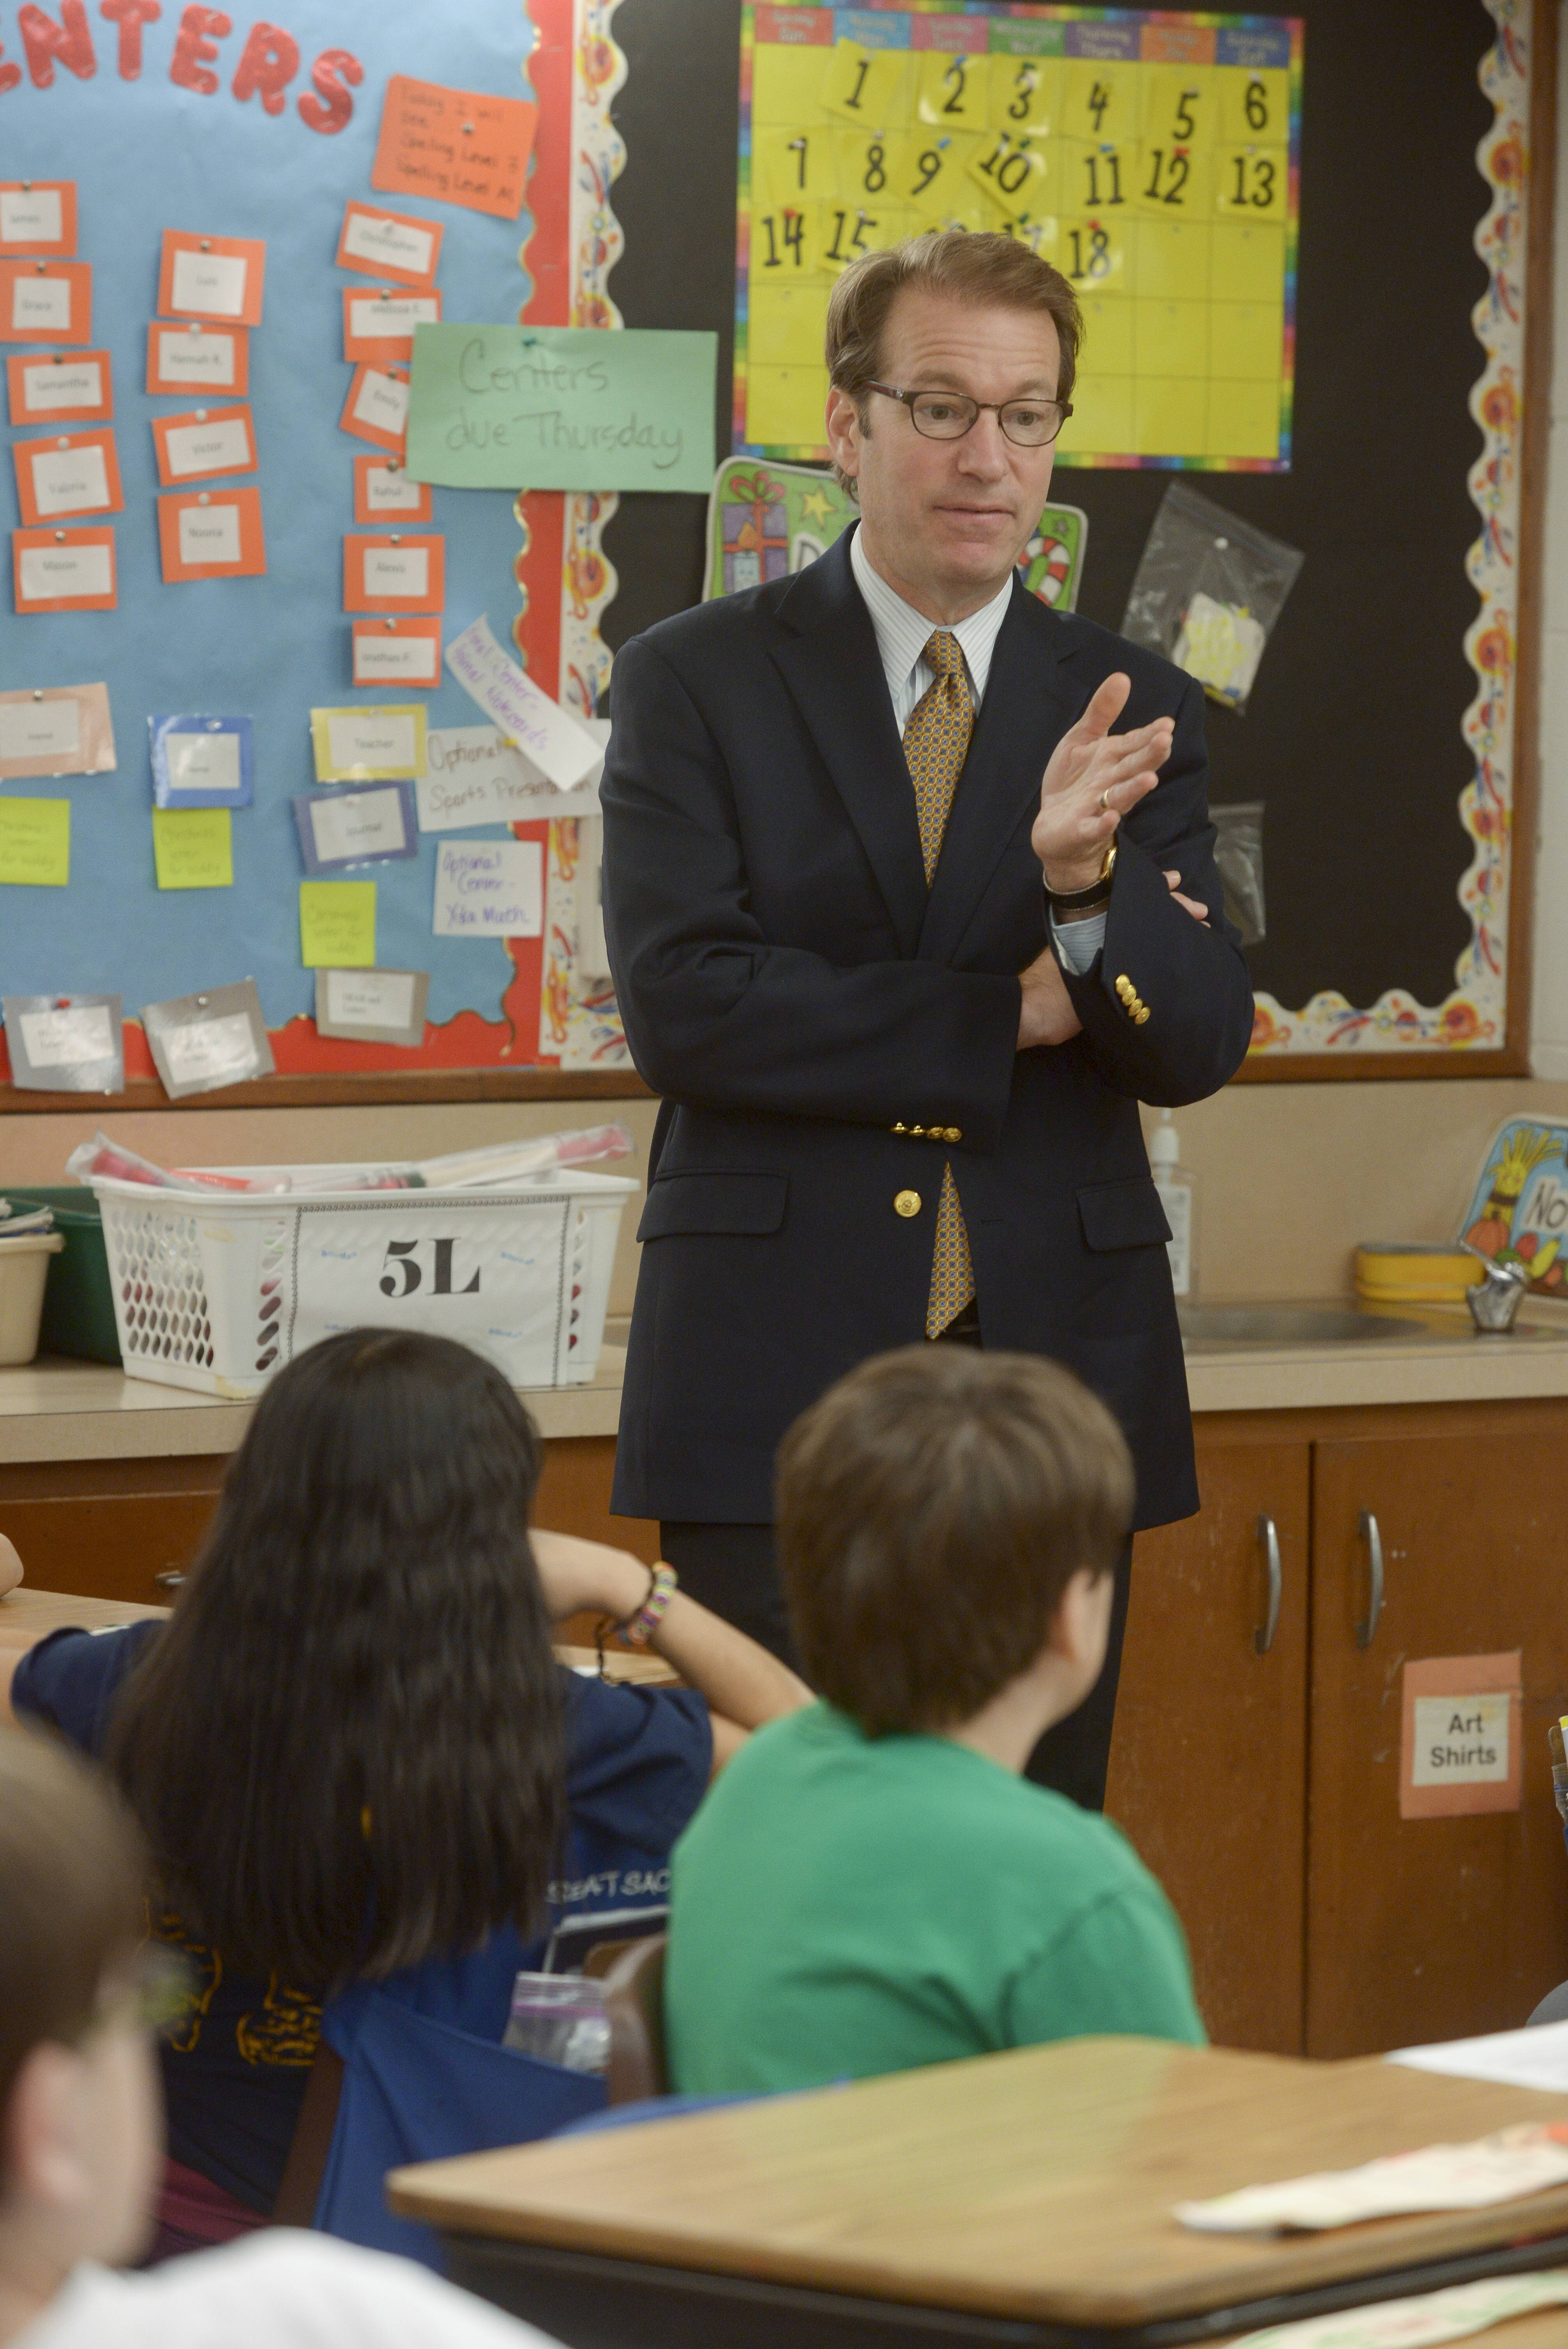 U.S. Rep Peter Roskam visited Indian Knoll Elementary School in West Chicago District 33 Wednesday to speak to the fifth-grade leadership group and encourage students to take the initiative to create positive change.